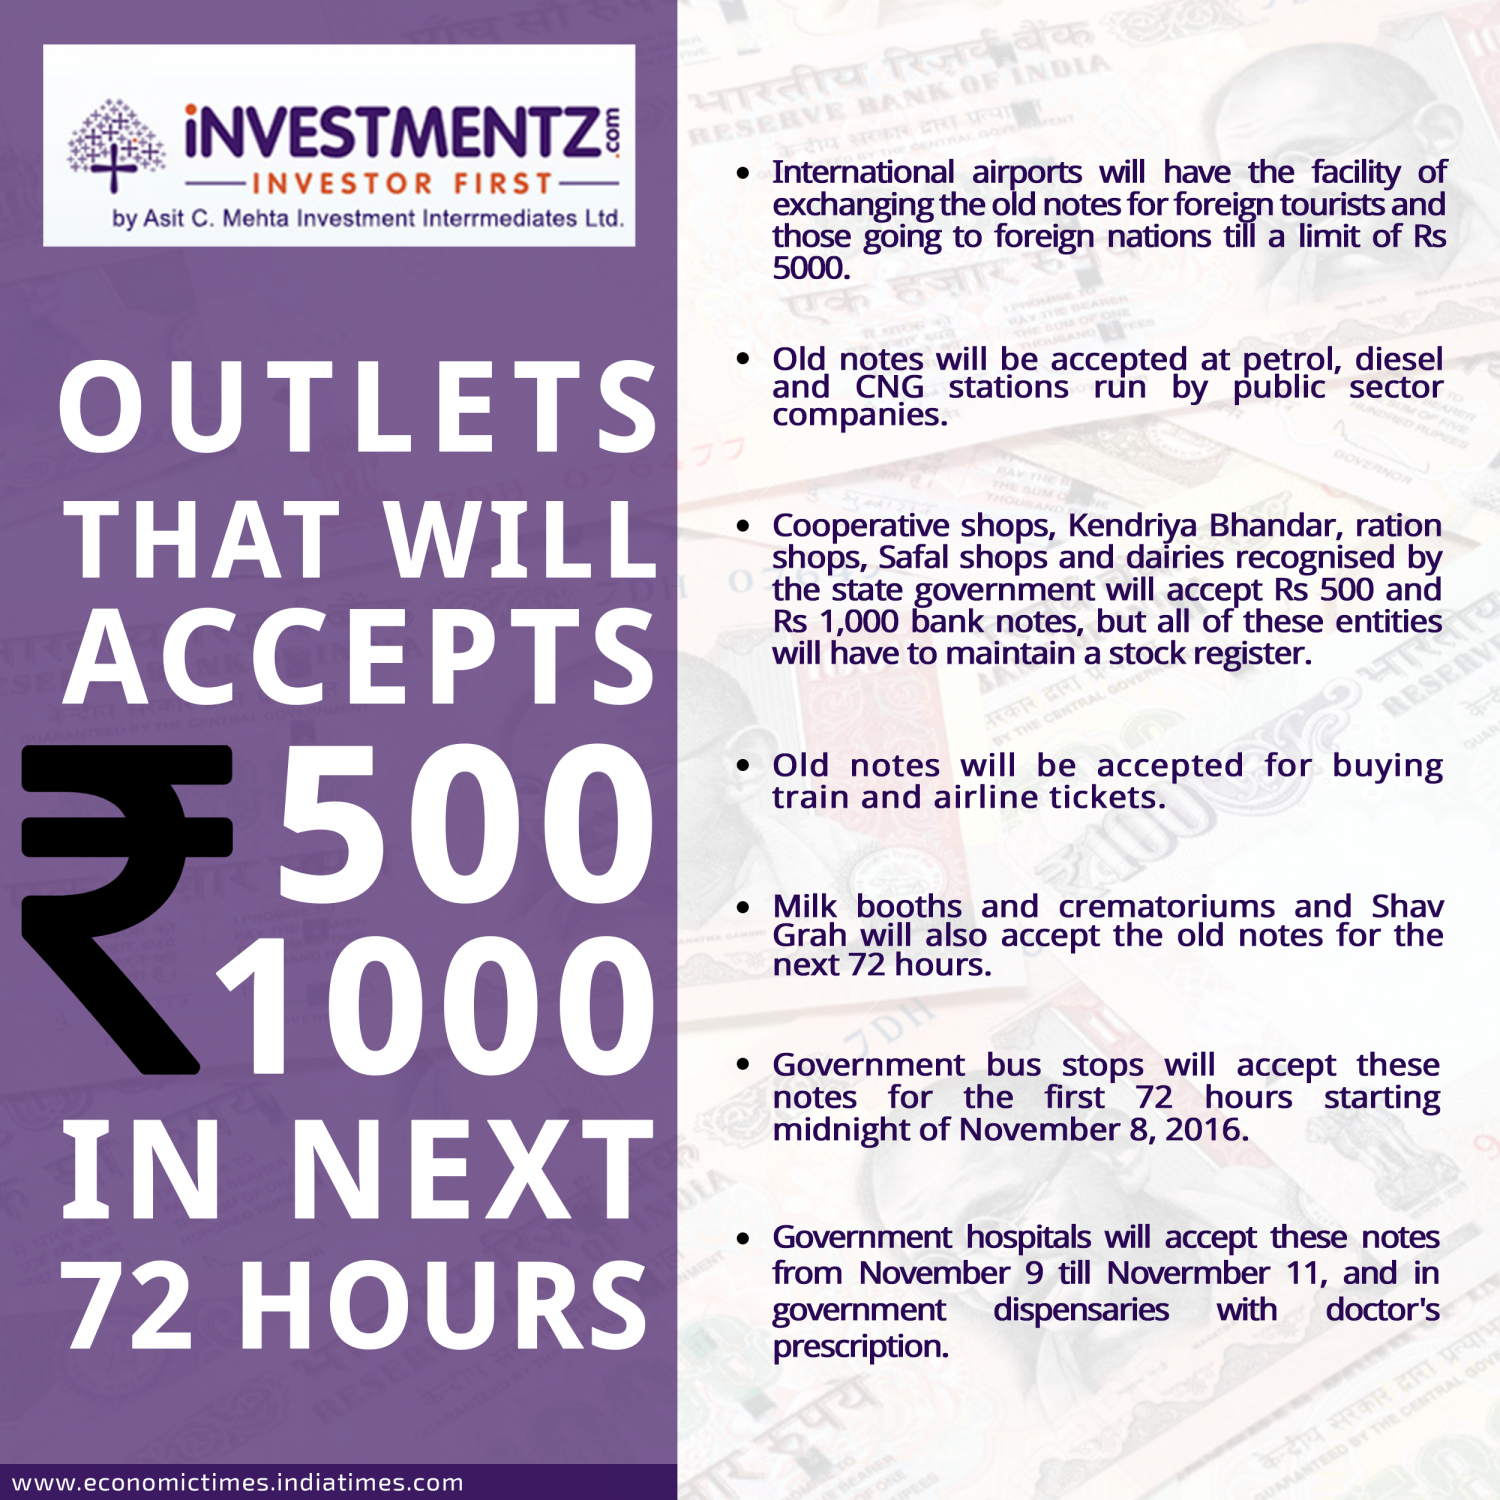 Outlets That Will Accepts 500 and 1000 in next 72 Hrs Infographic